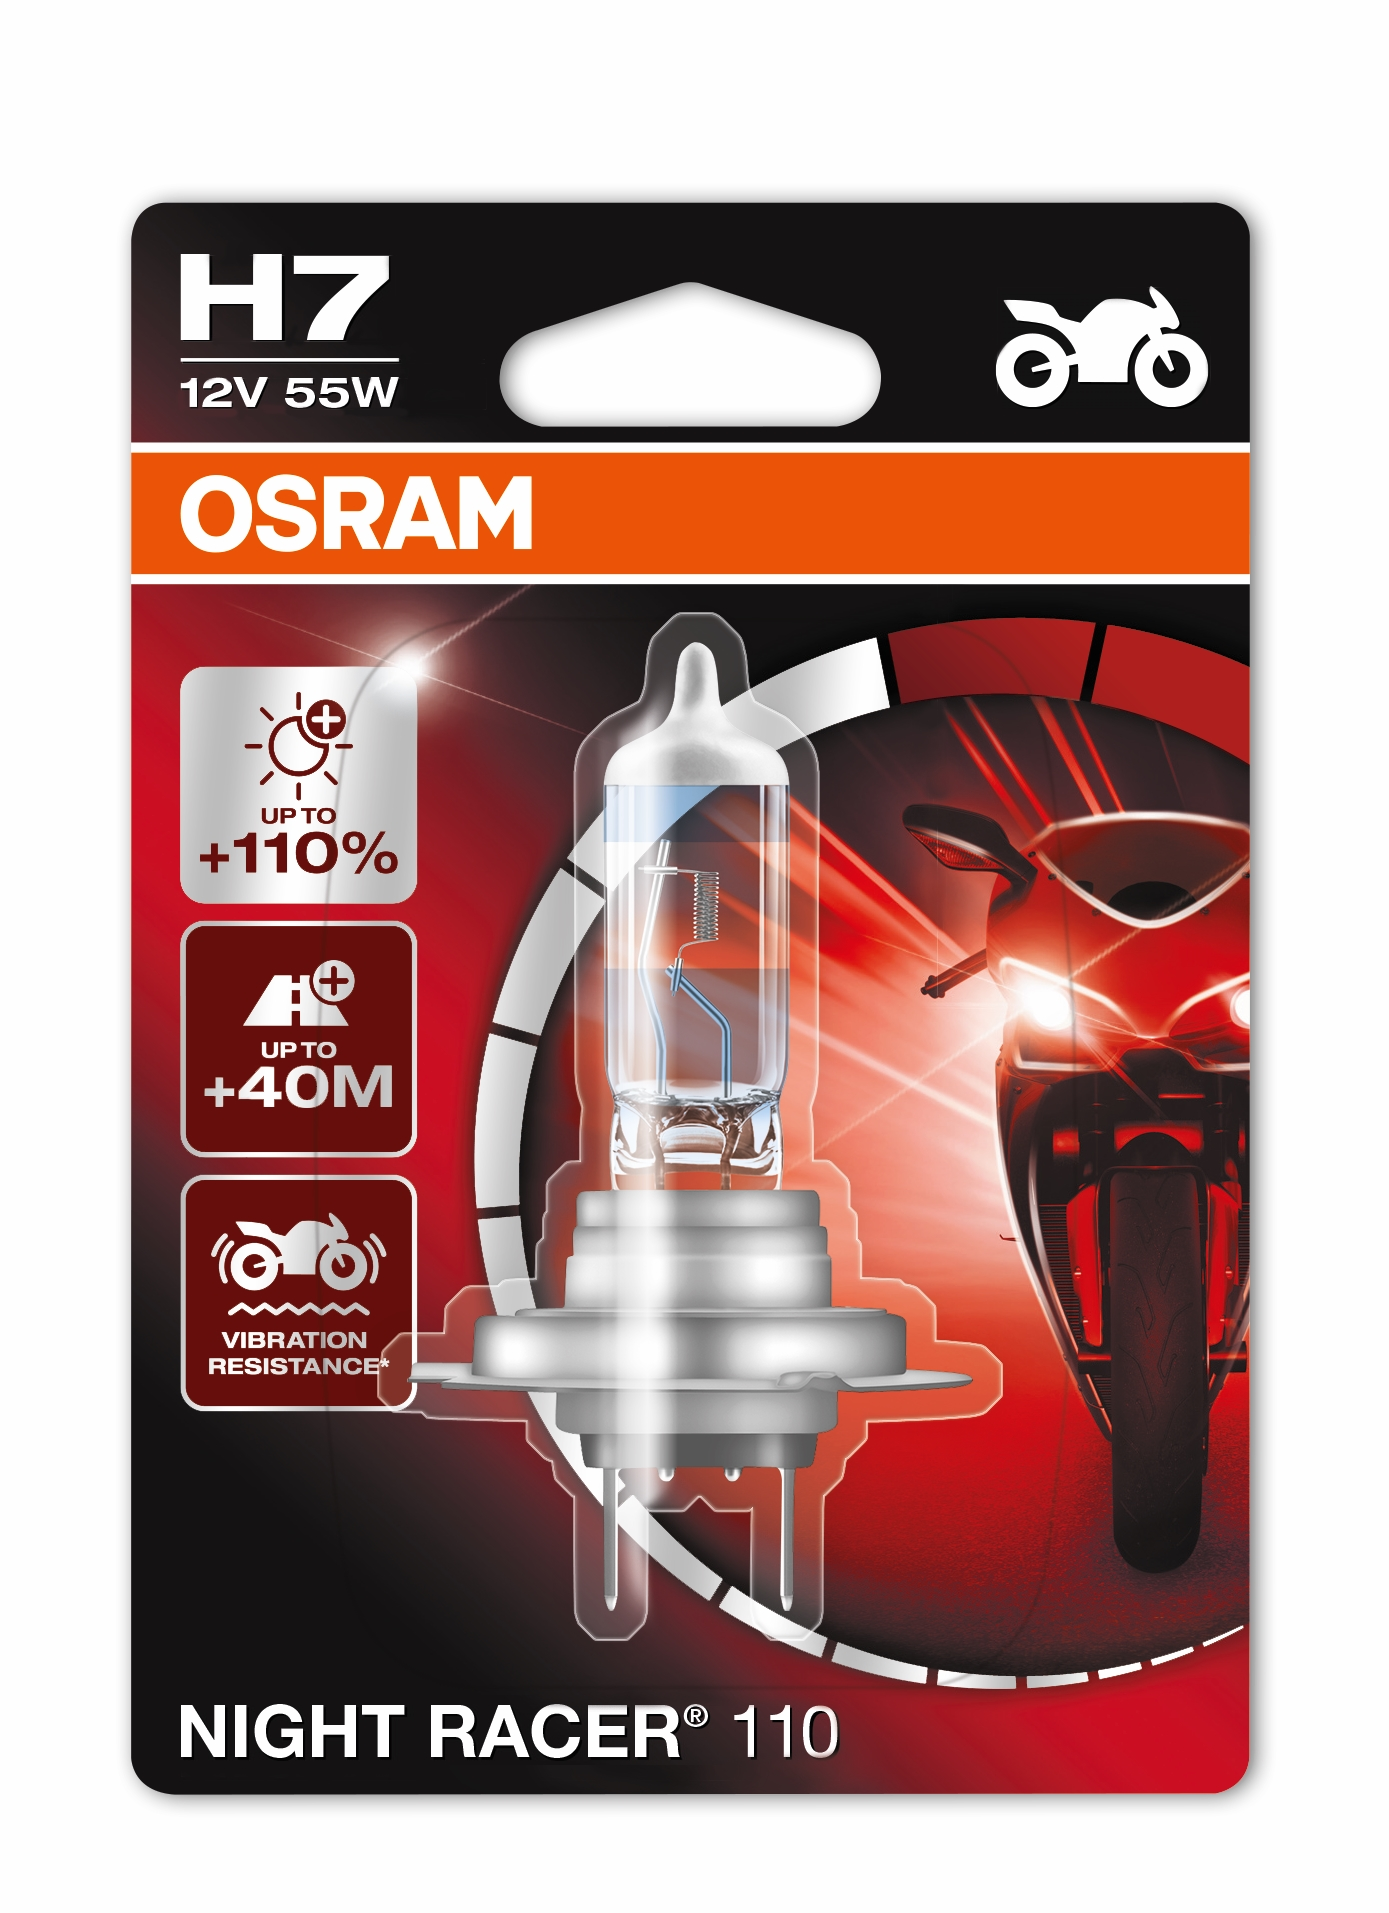 1x OSRAM H7 NIGHT RACER 110 BULB UPGRADE 55W 12V PX26D 64210NR1 MOTORCYCLE BULB